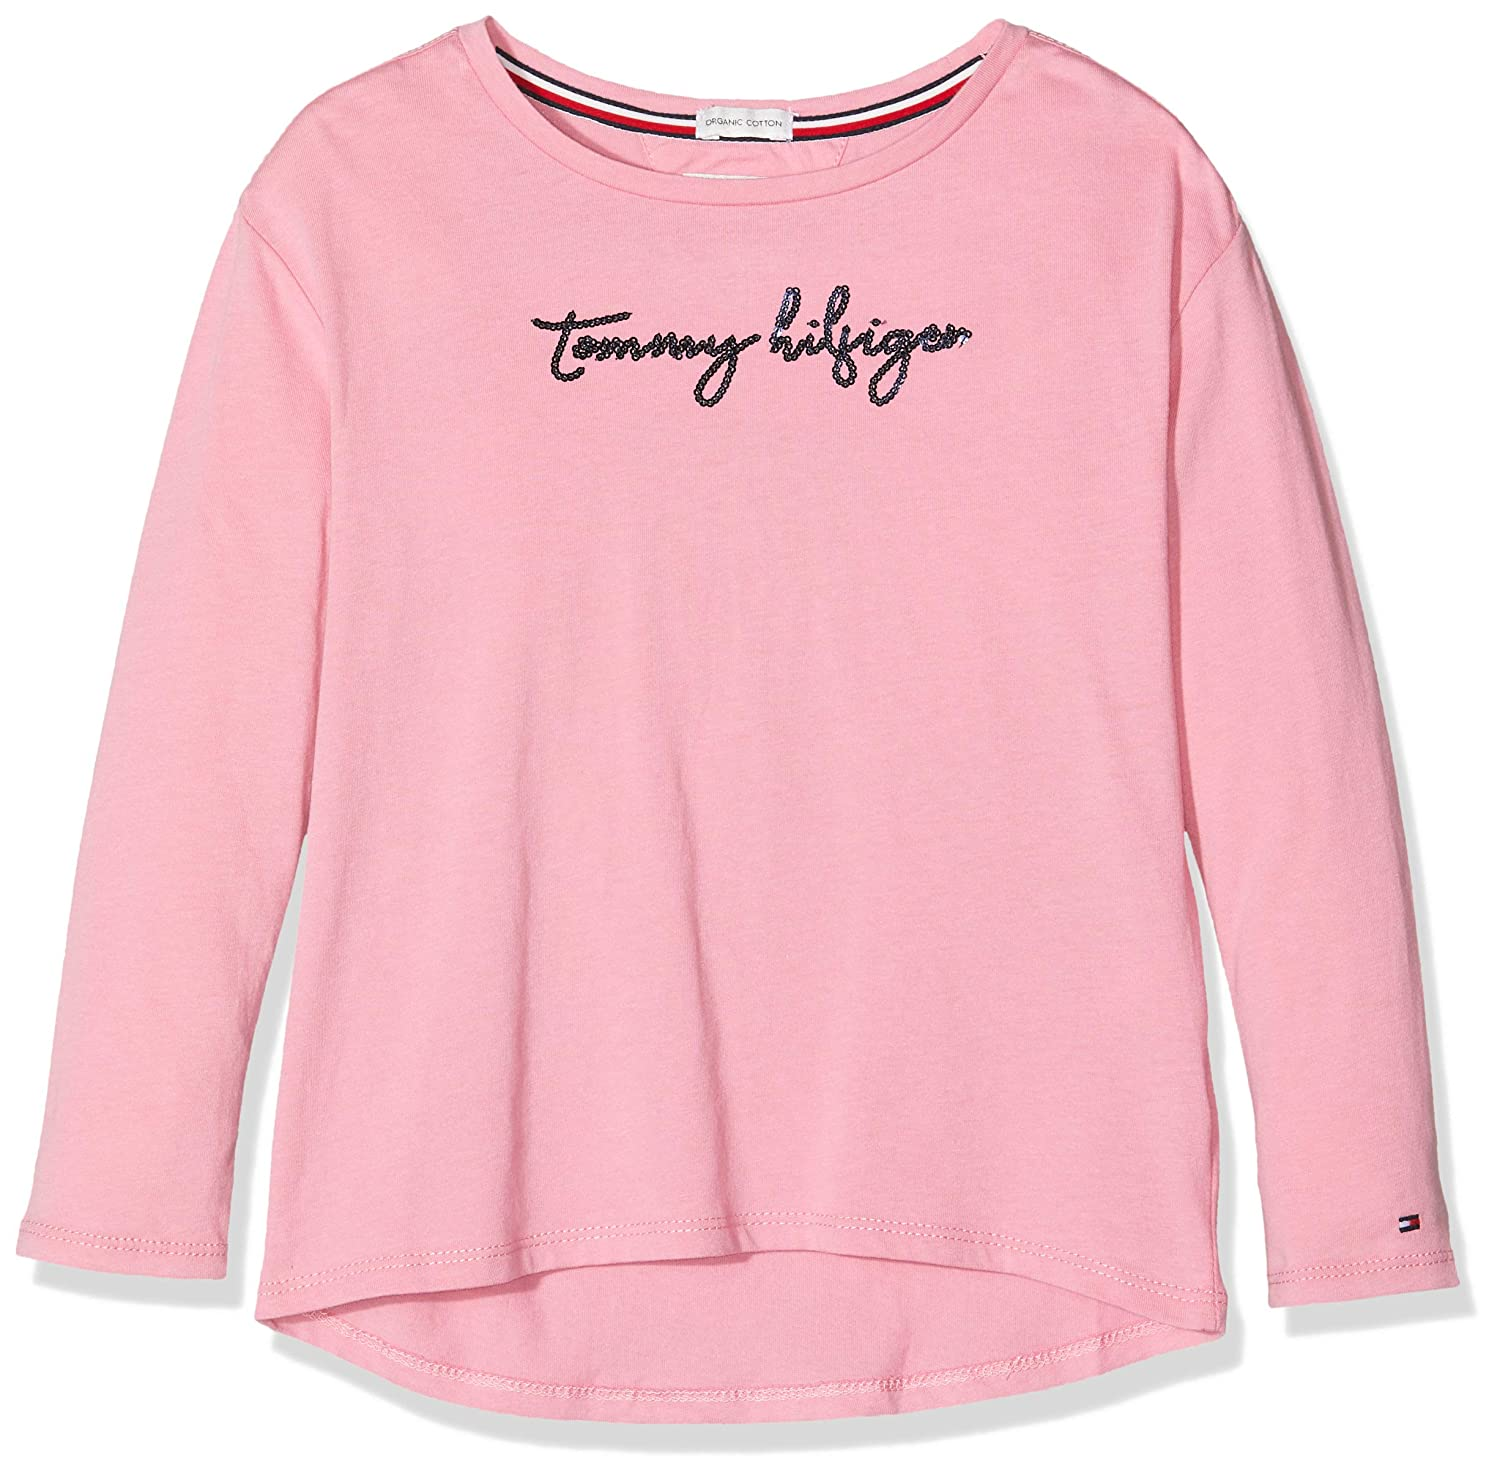 Tommy Hilfiger Girls Sequins Graphic Tee L//S Long Sleeve Top